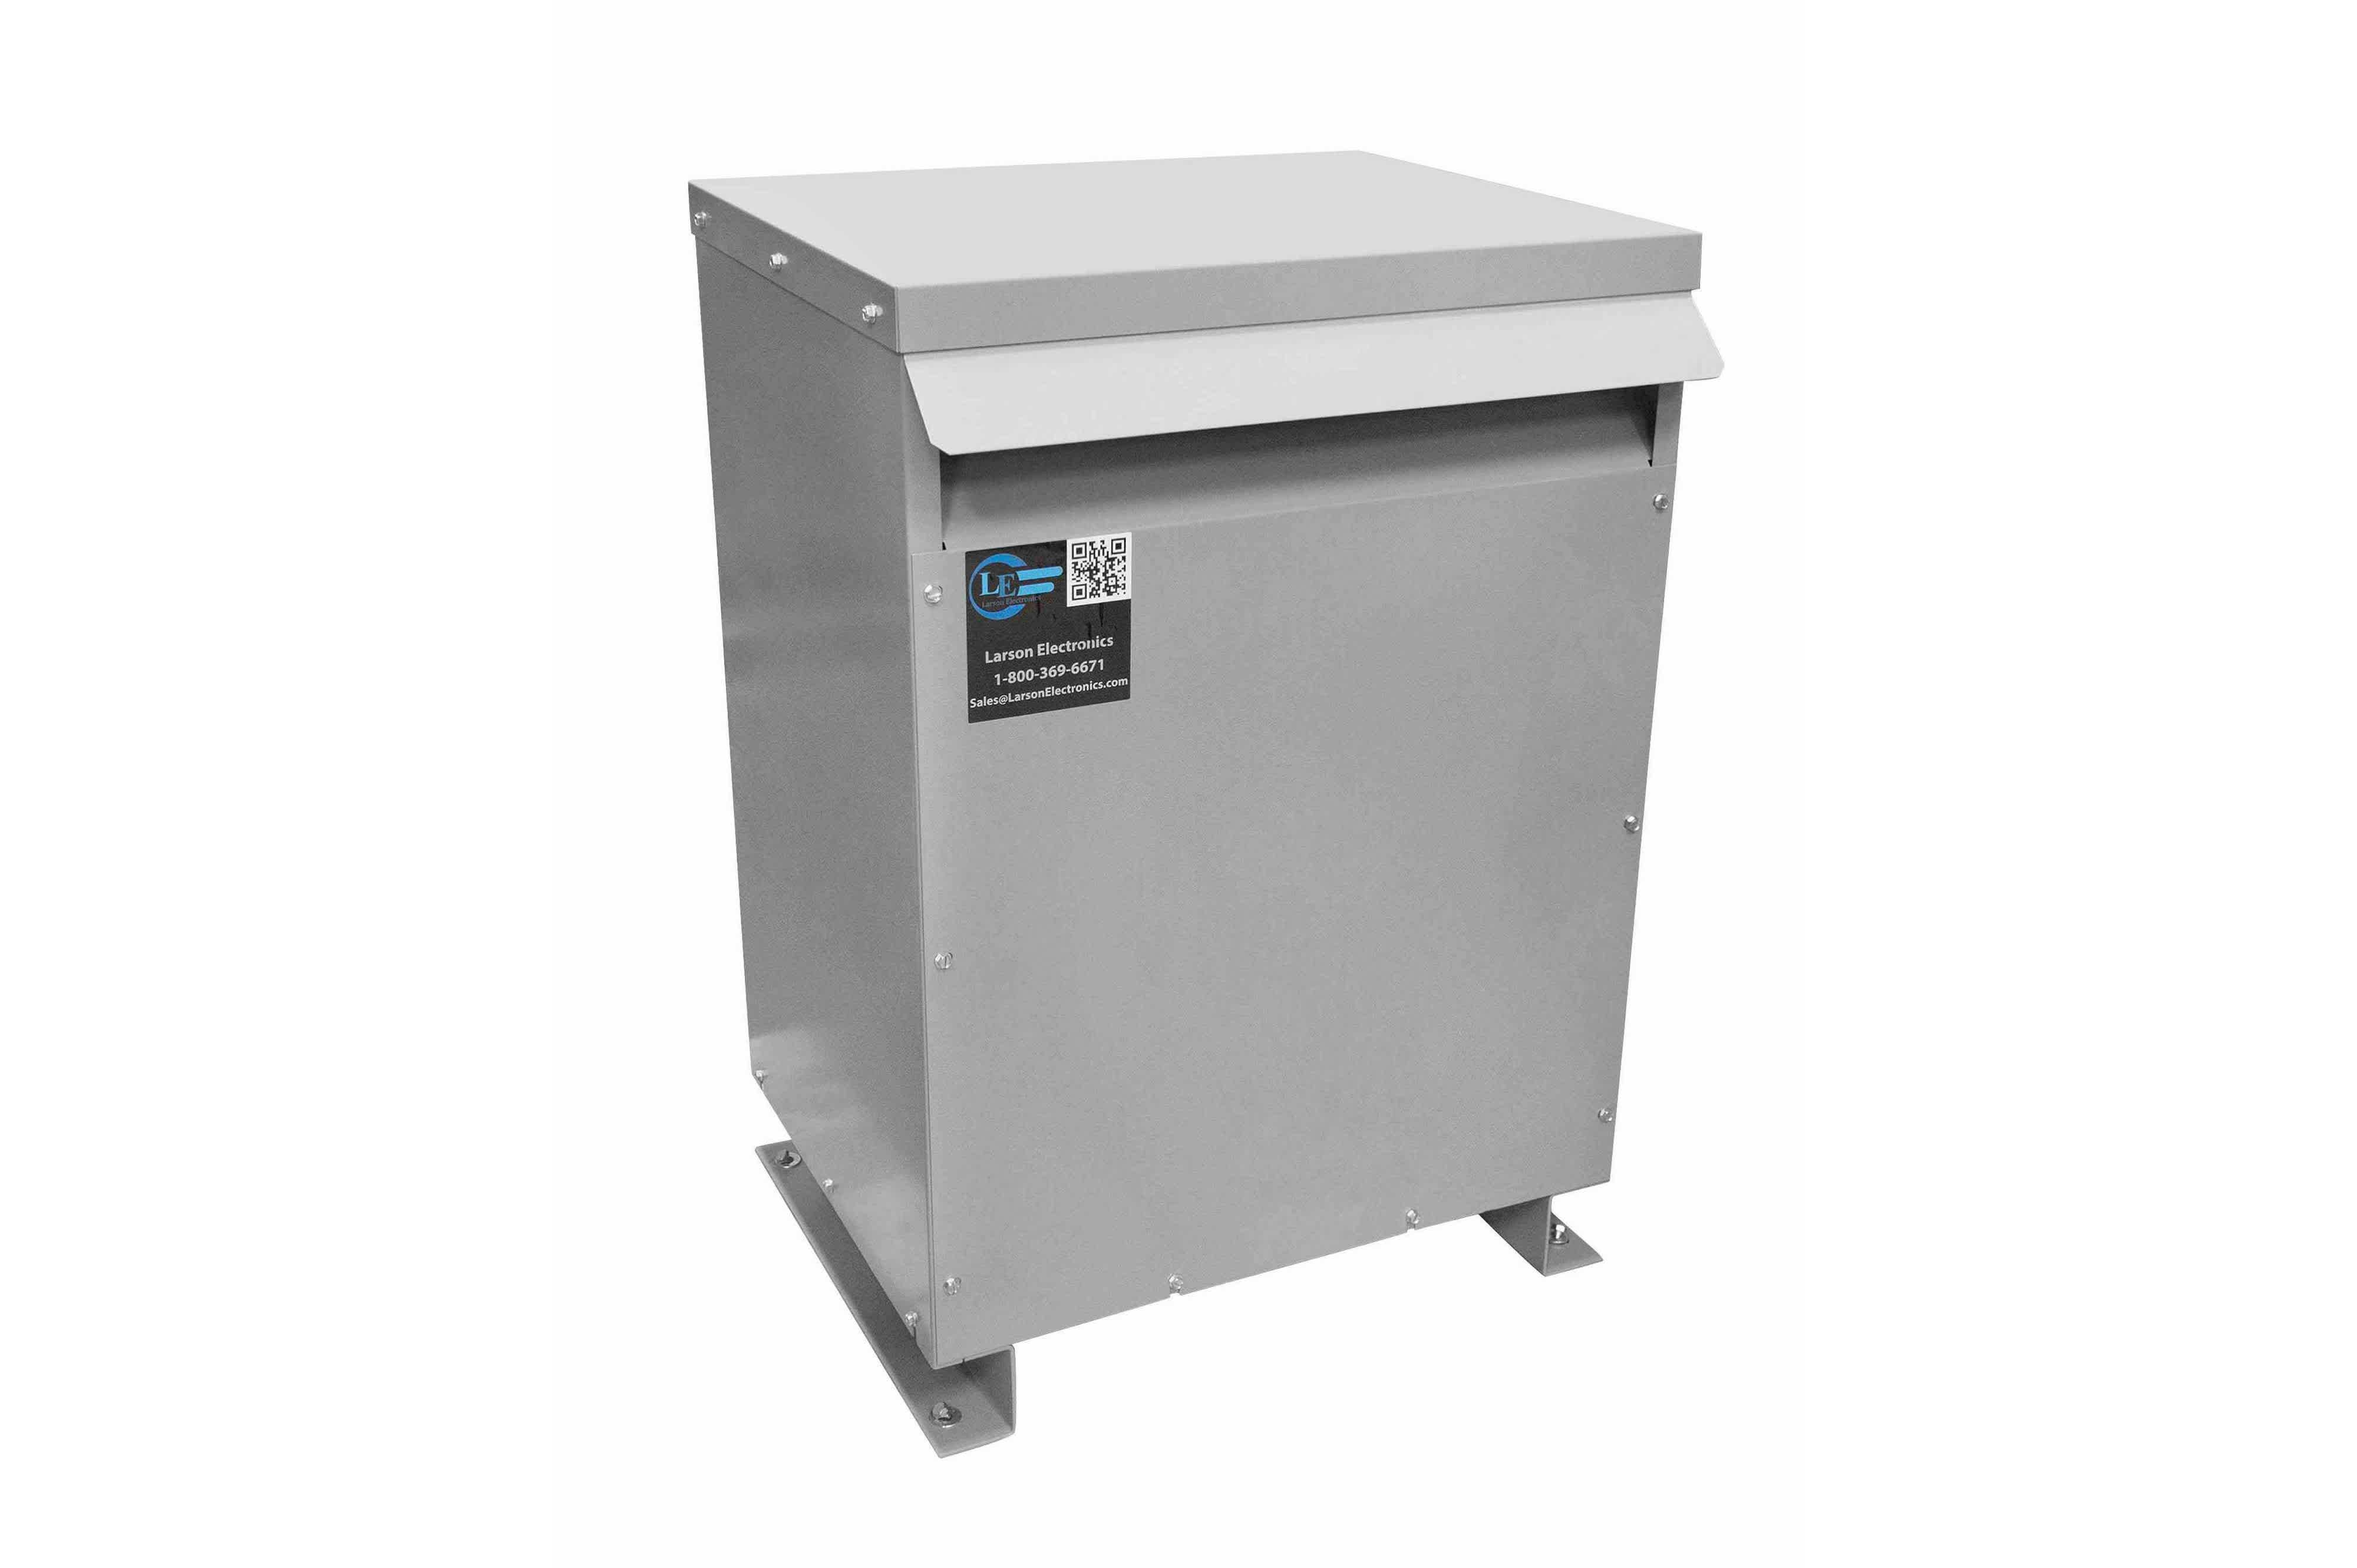 40 kVA 3PH Isolation Transformer, 600V Wye Primary, 240V/120 Delta Secondary, N3R, Ventilated, 60 Hz